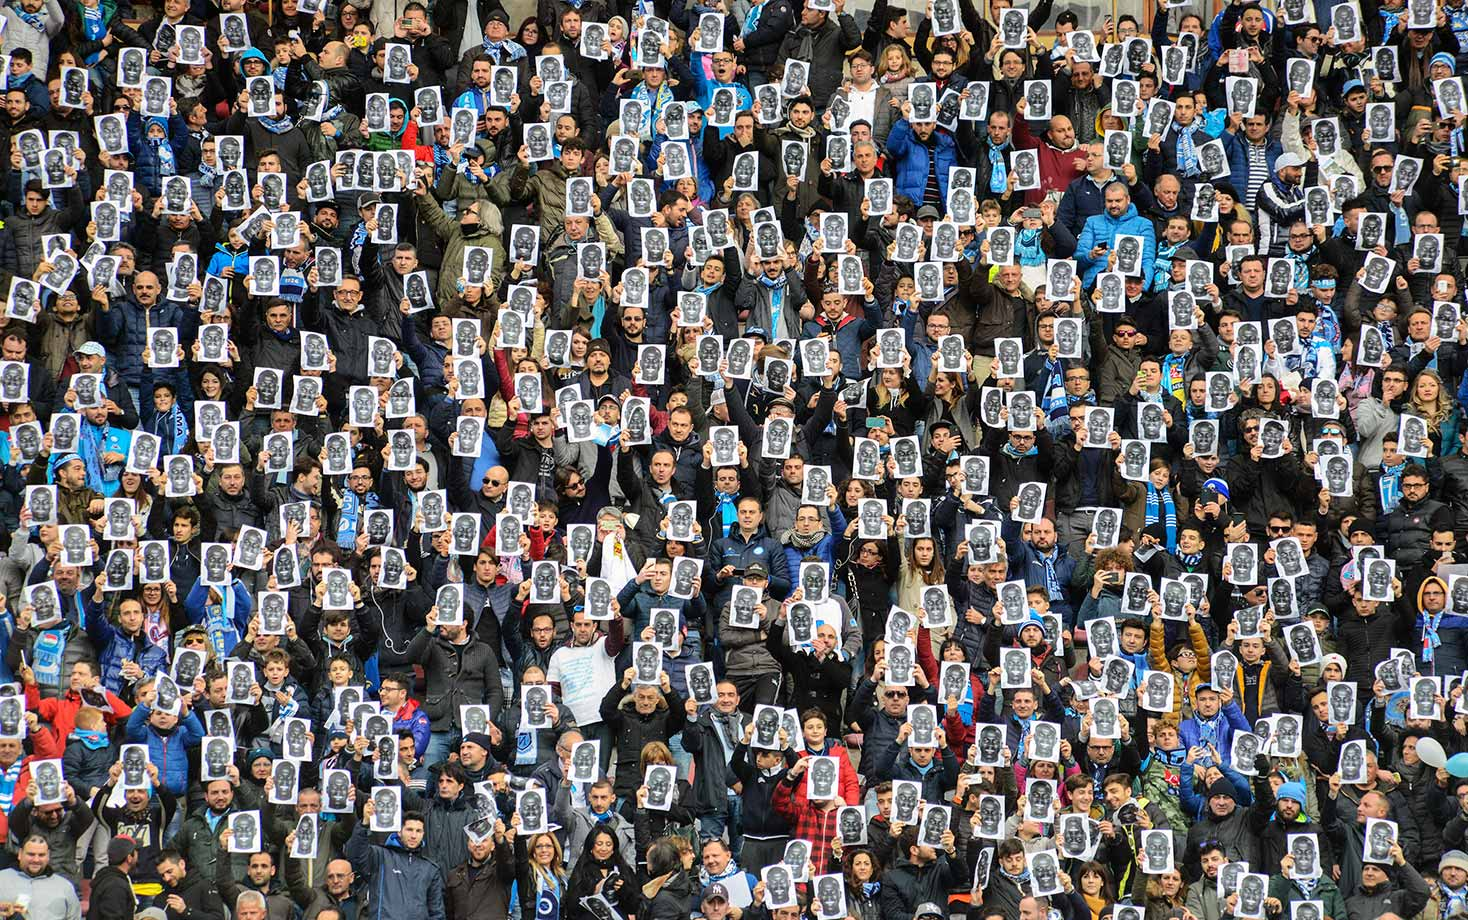 Fans of Napoli's Kalidou Koulibaly hold up his portrait ahead of a Serie A match between Napoli and Carpi at Stadio San Paolo in Naples, Italy.